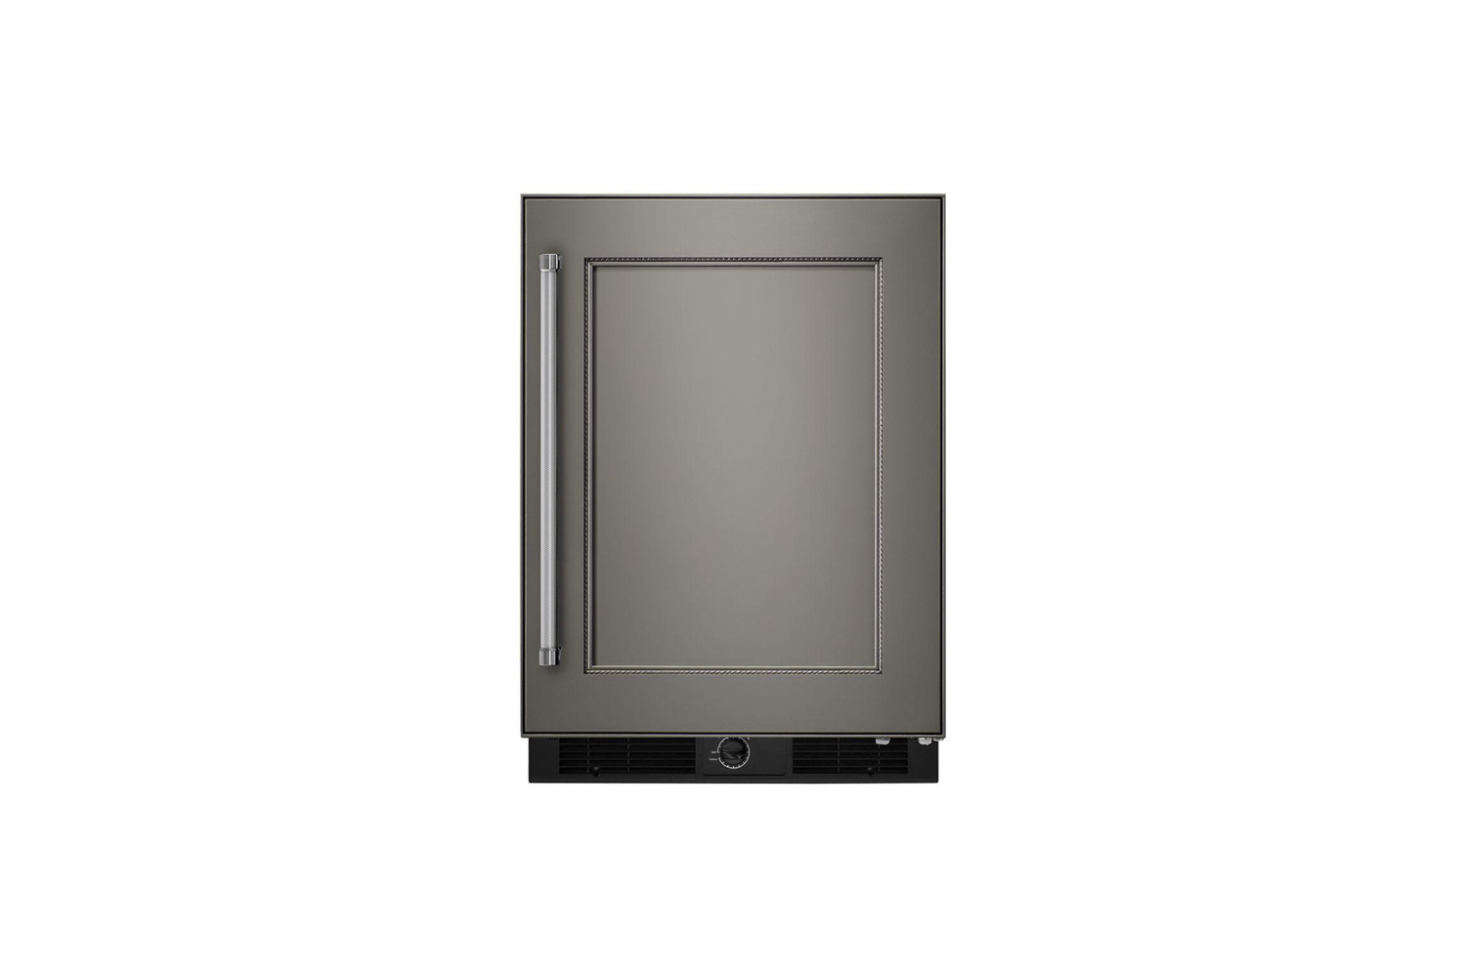 The KitchenAid -Inch Undercounter Refrigerator comes in stainless steel or a panel ready design (shown); $src=